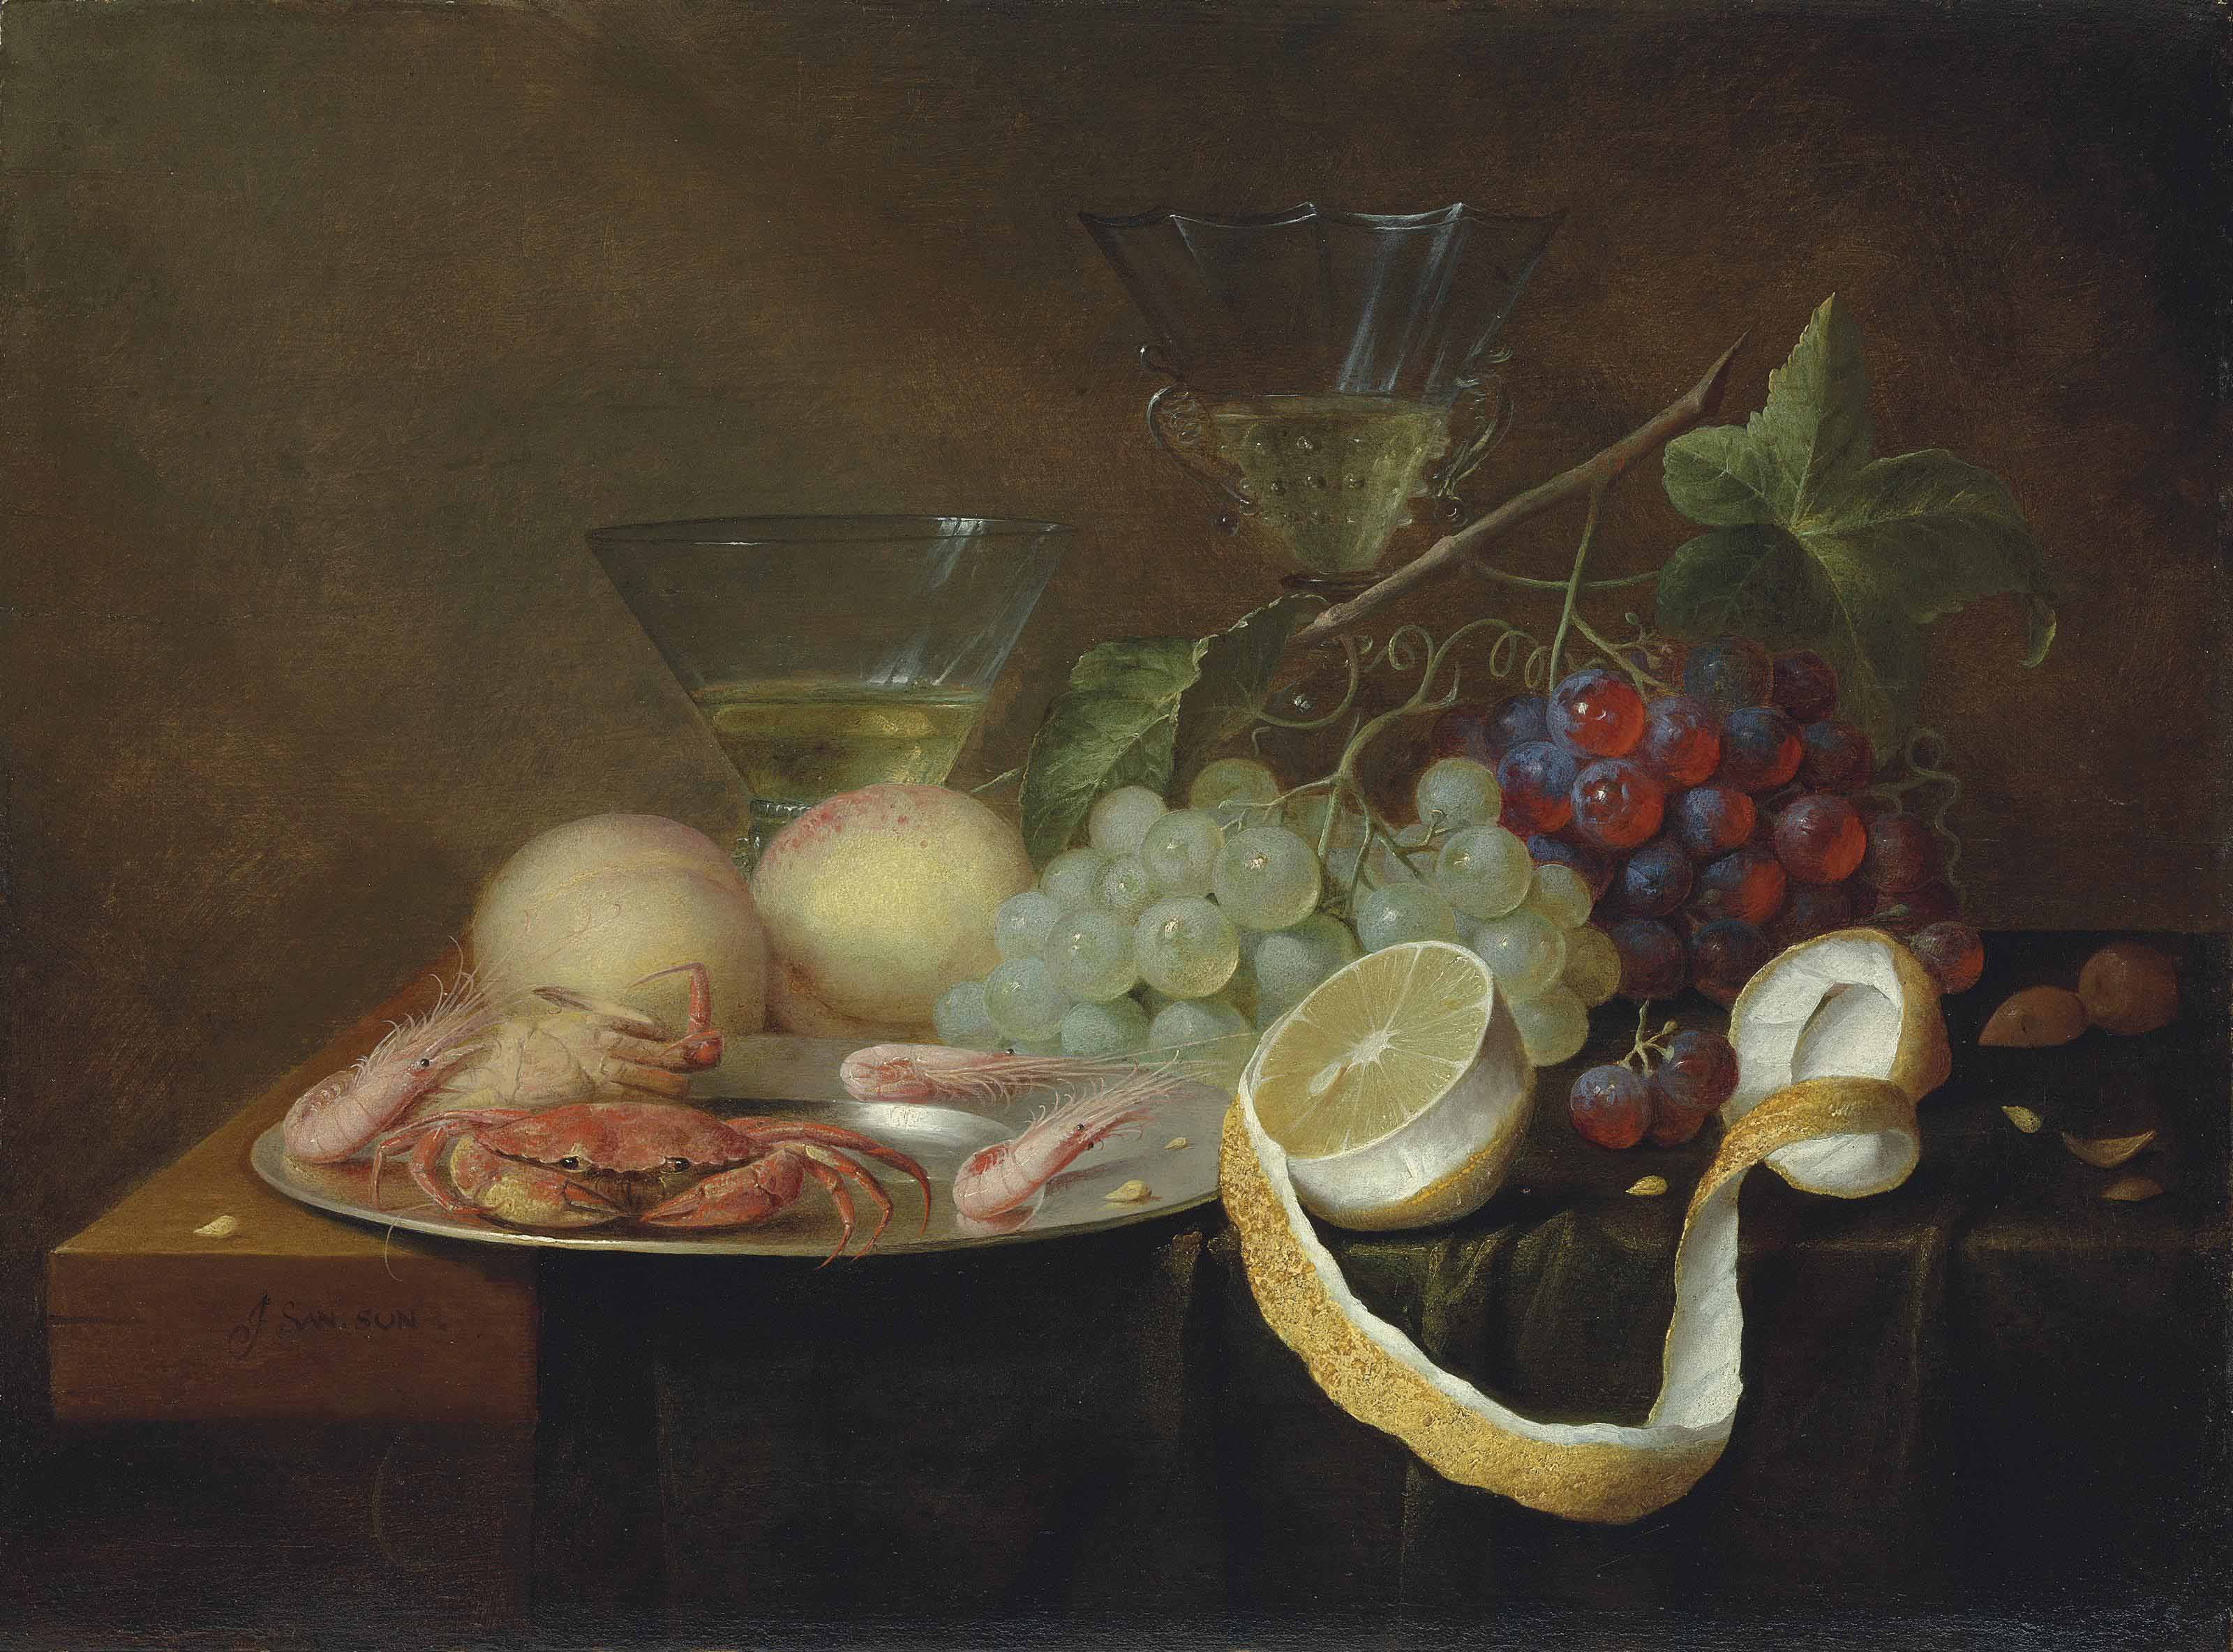 Crabs and shrimp on a pewter platter, with grapes, a partly-peeled orange, peaches and two wine glasses, on a partially draped table